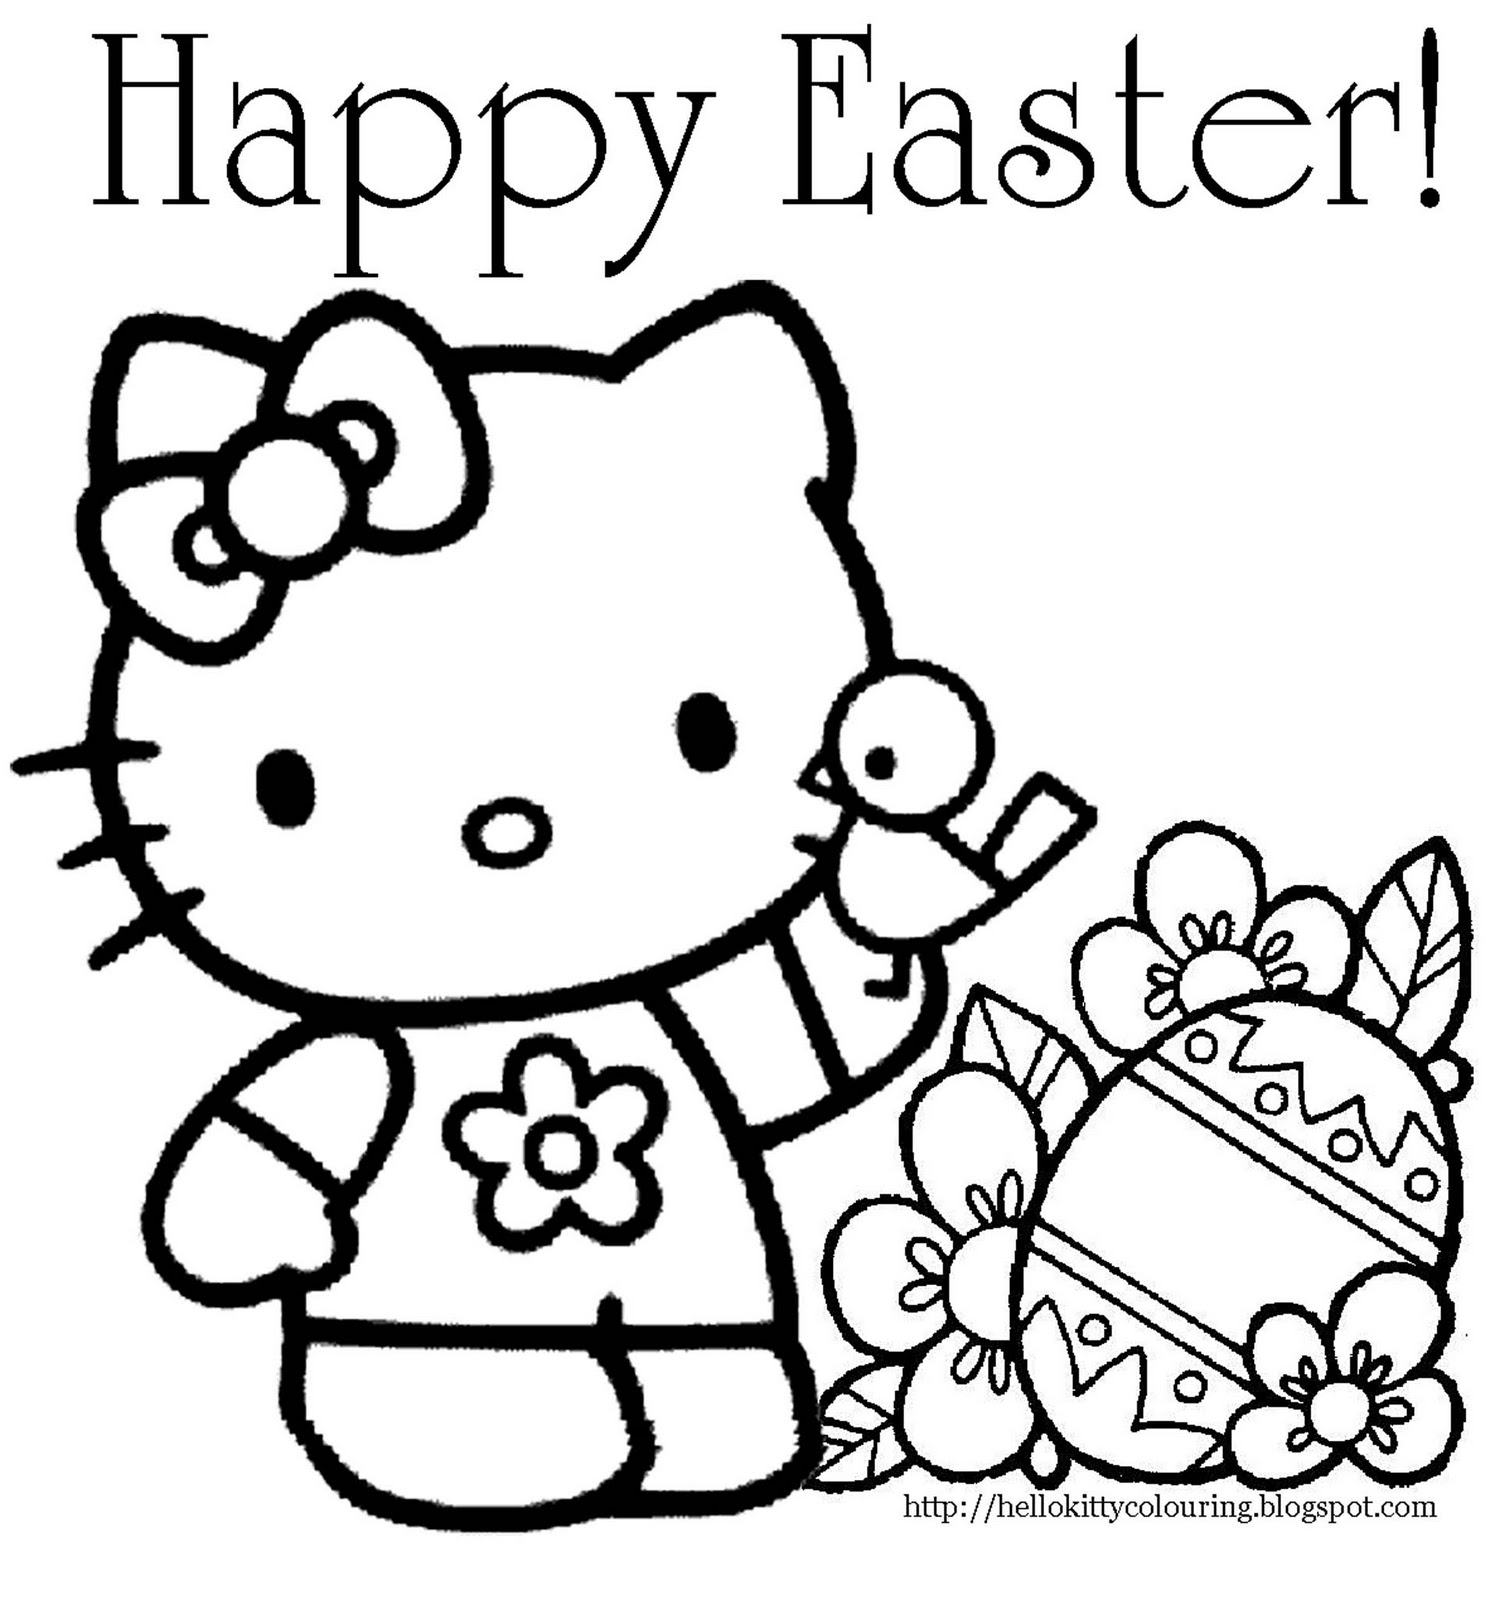 printable easter coloring pages for toddlers printable toddler coloring pages for kids cool2bkids toddlers easter for pages printable coloring